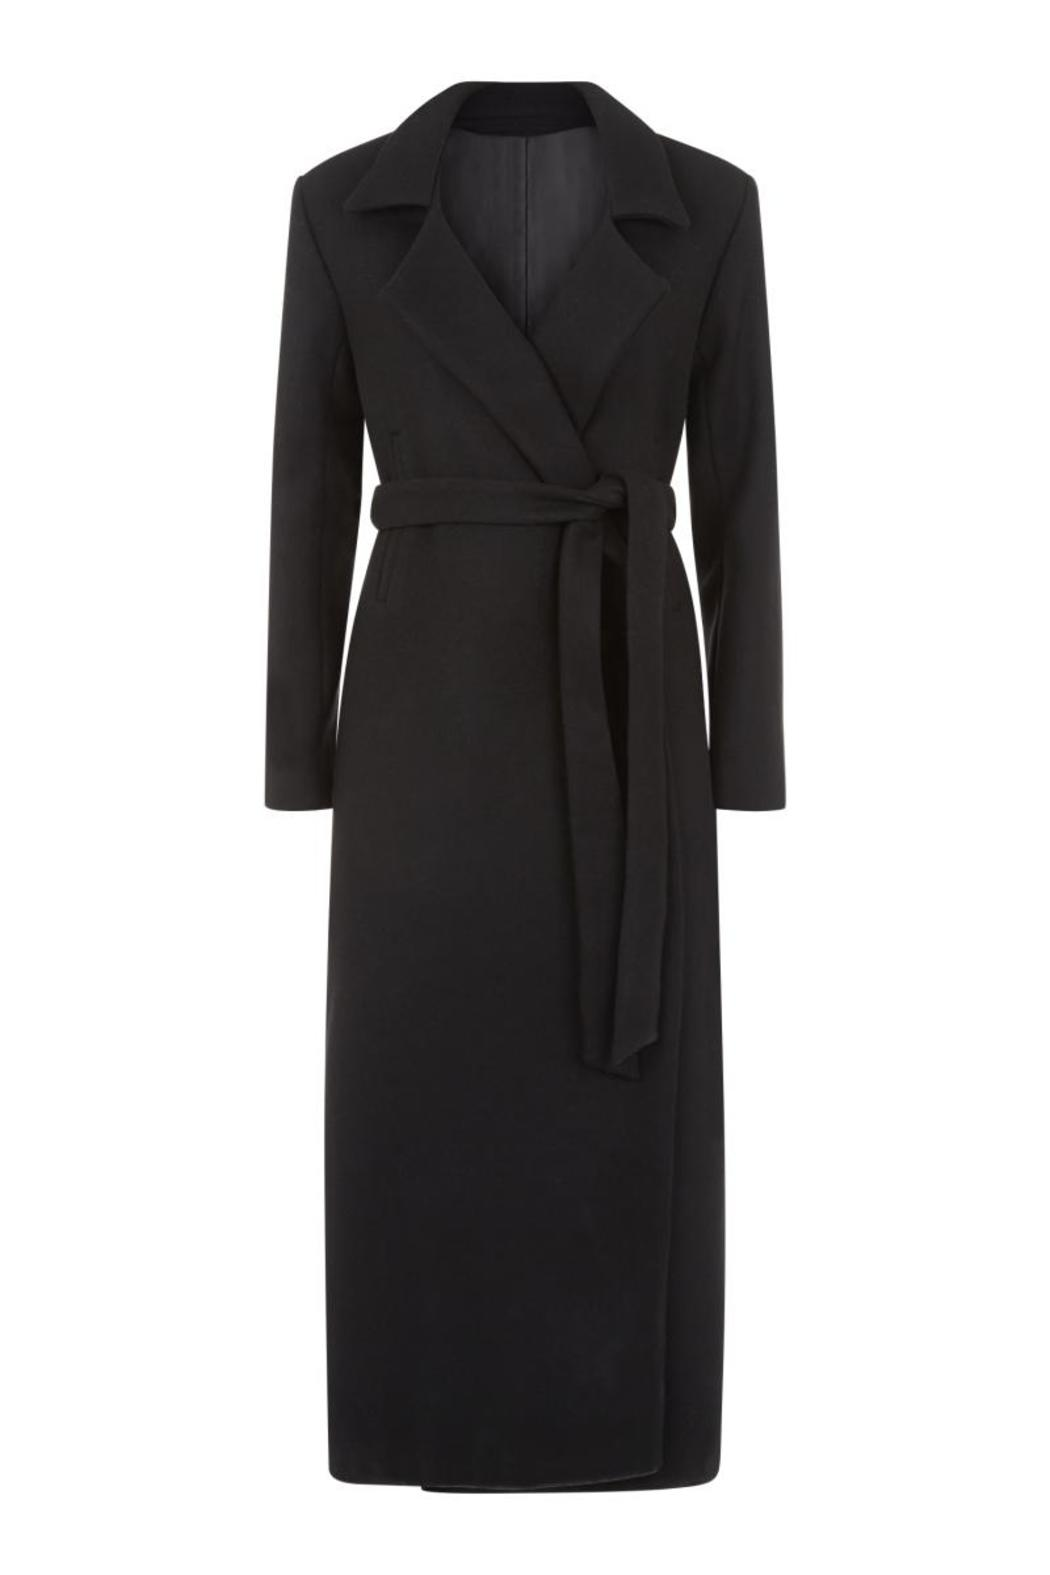 Charlie May Wool Duster Coat - Front Full Image